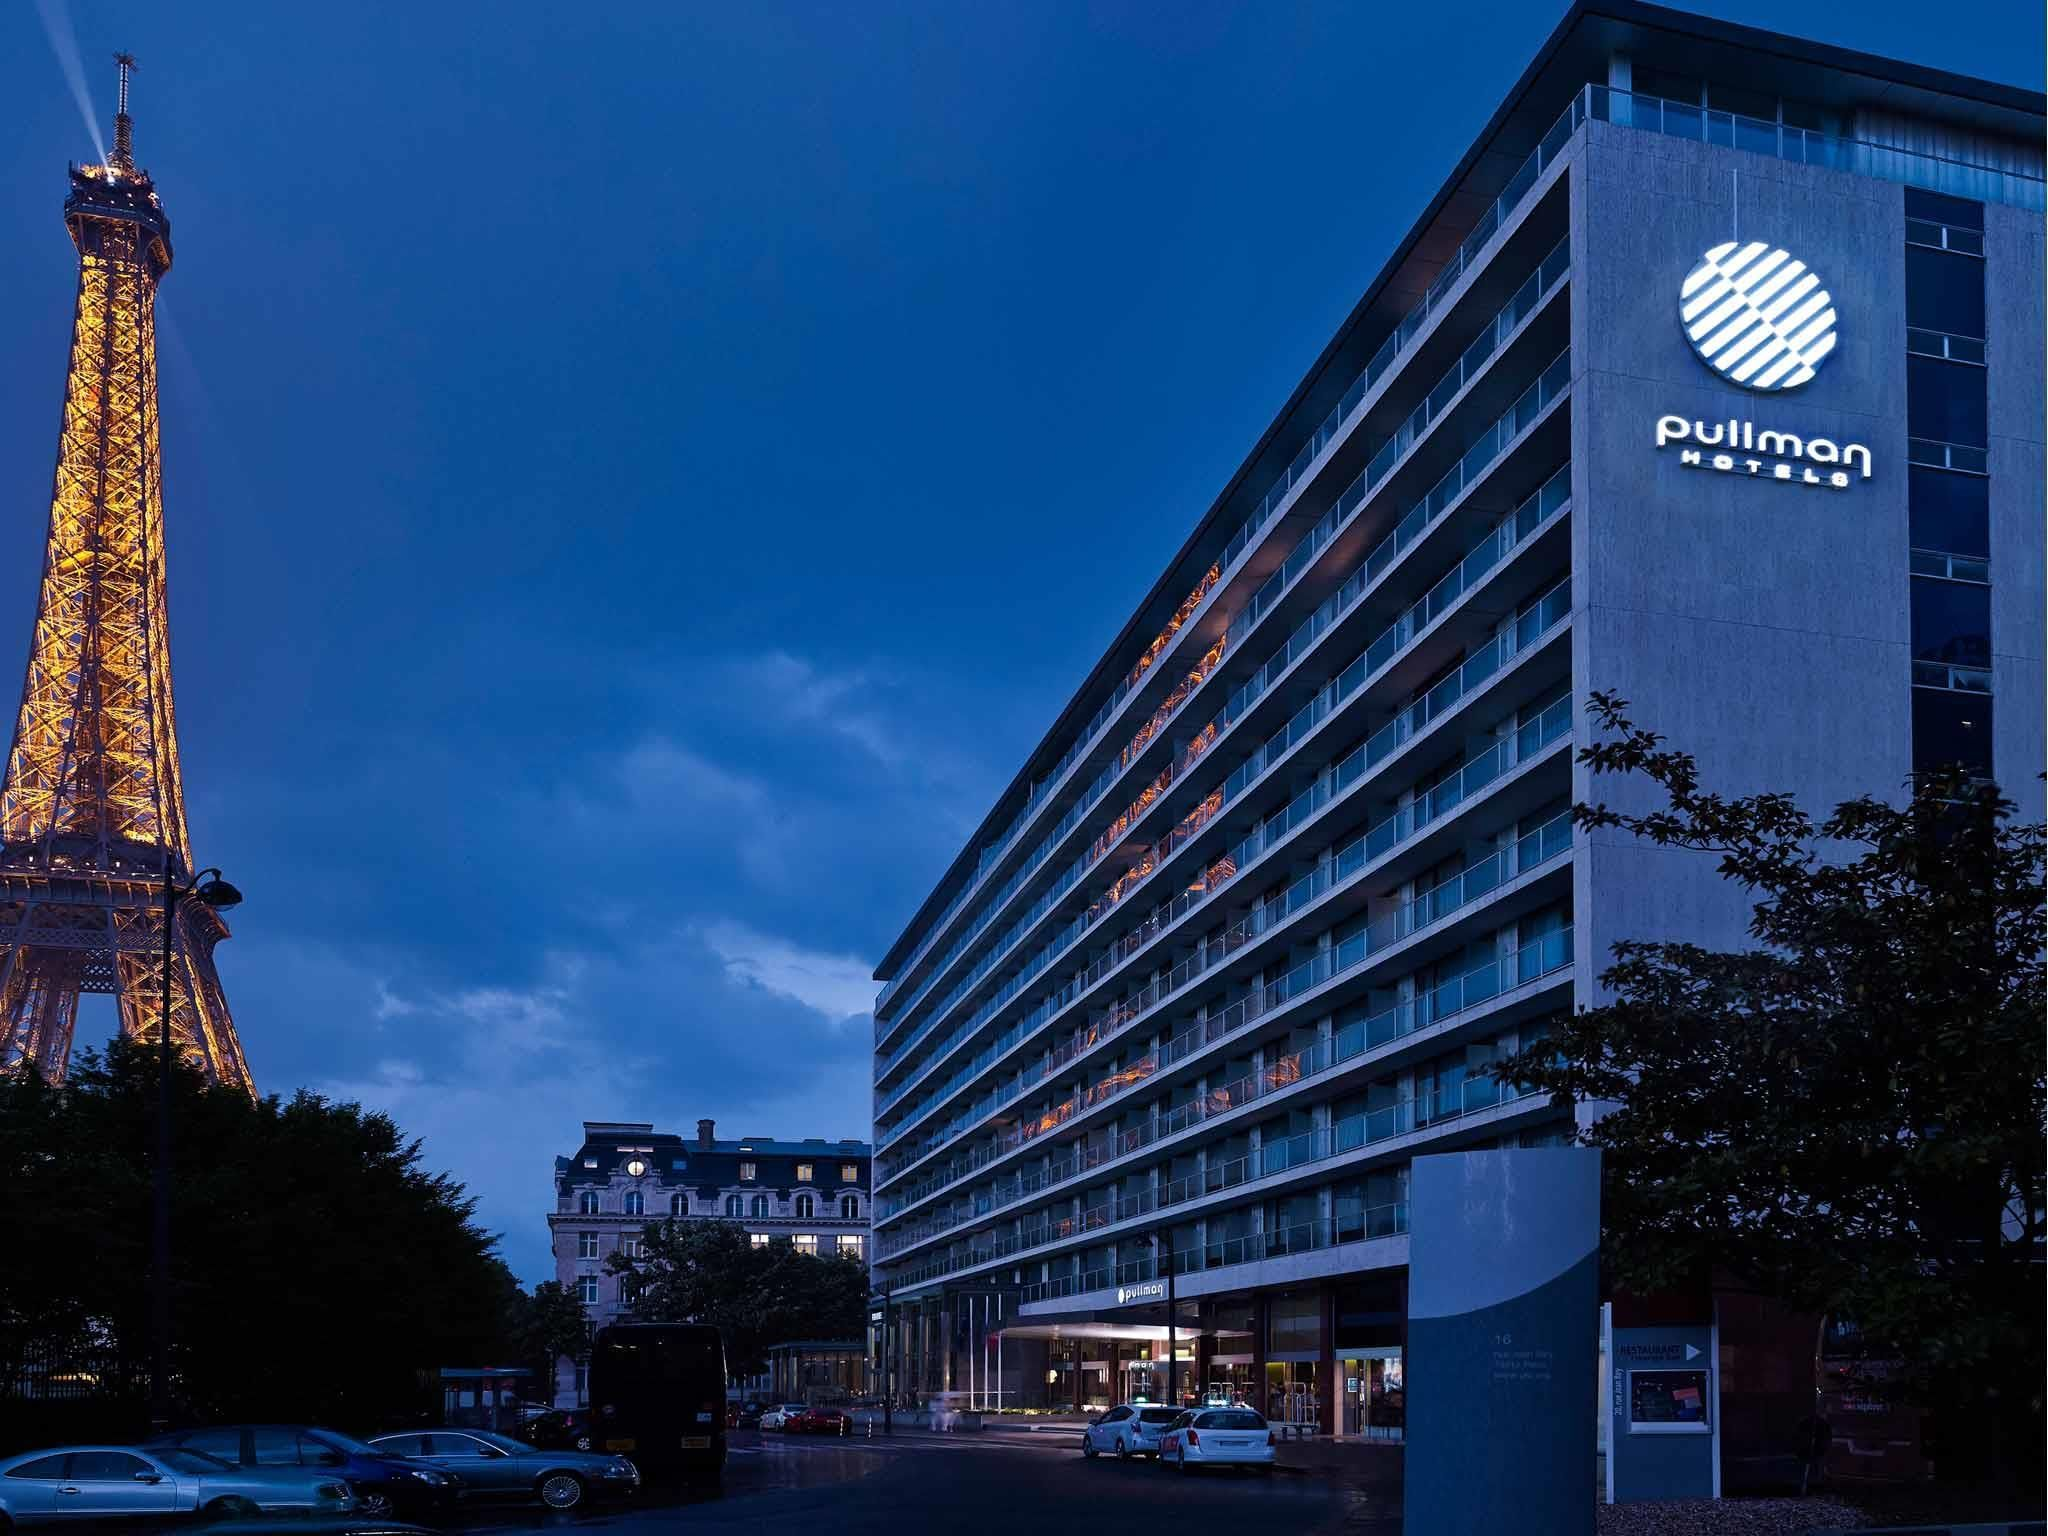 Paris Pullman Tour Eiffel Hotel France Europe Is Perfectly